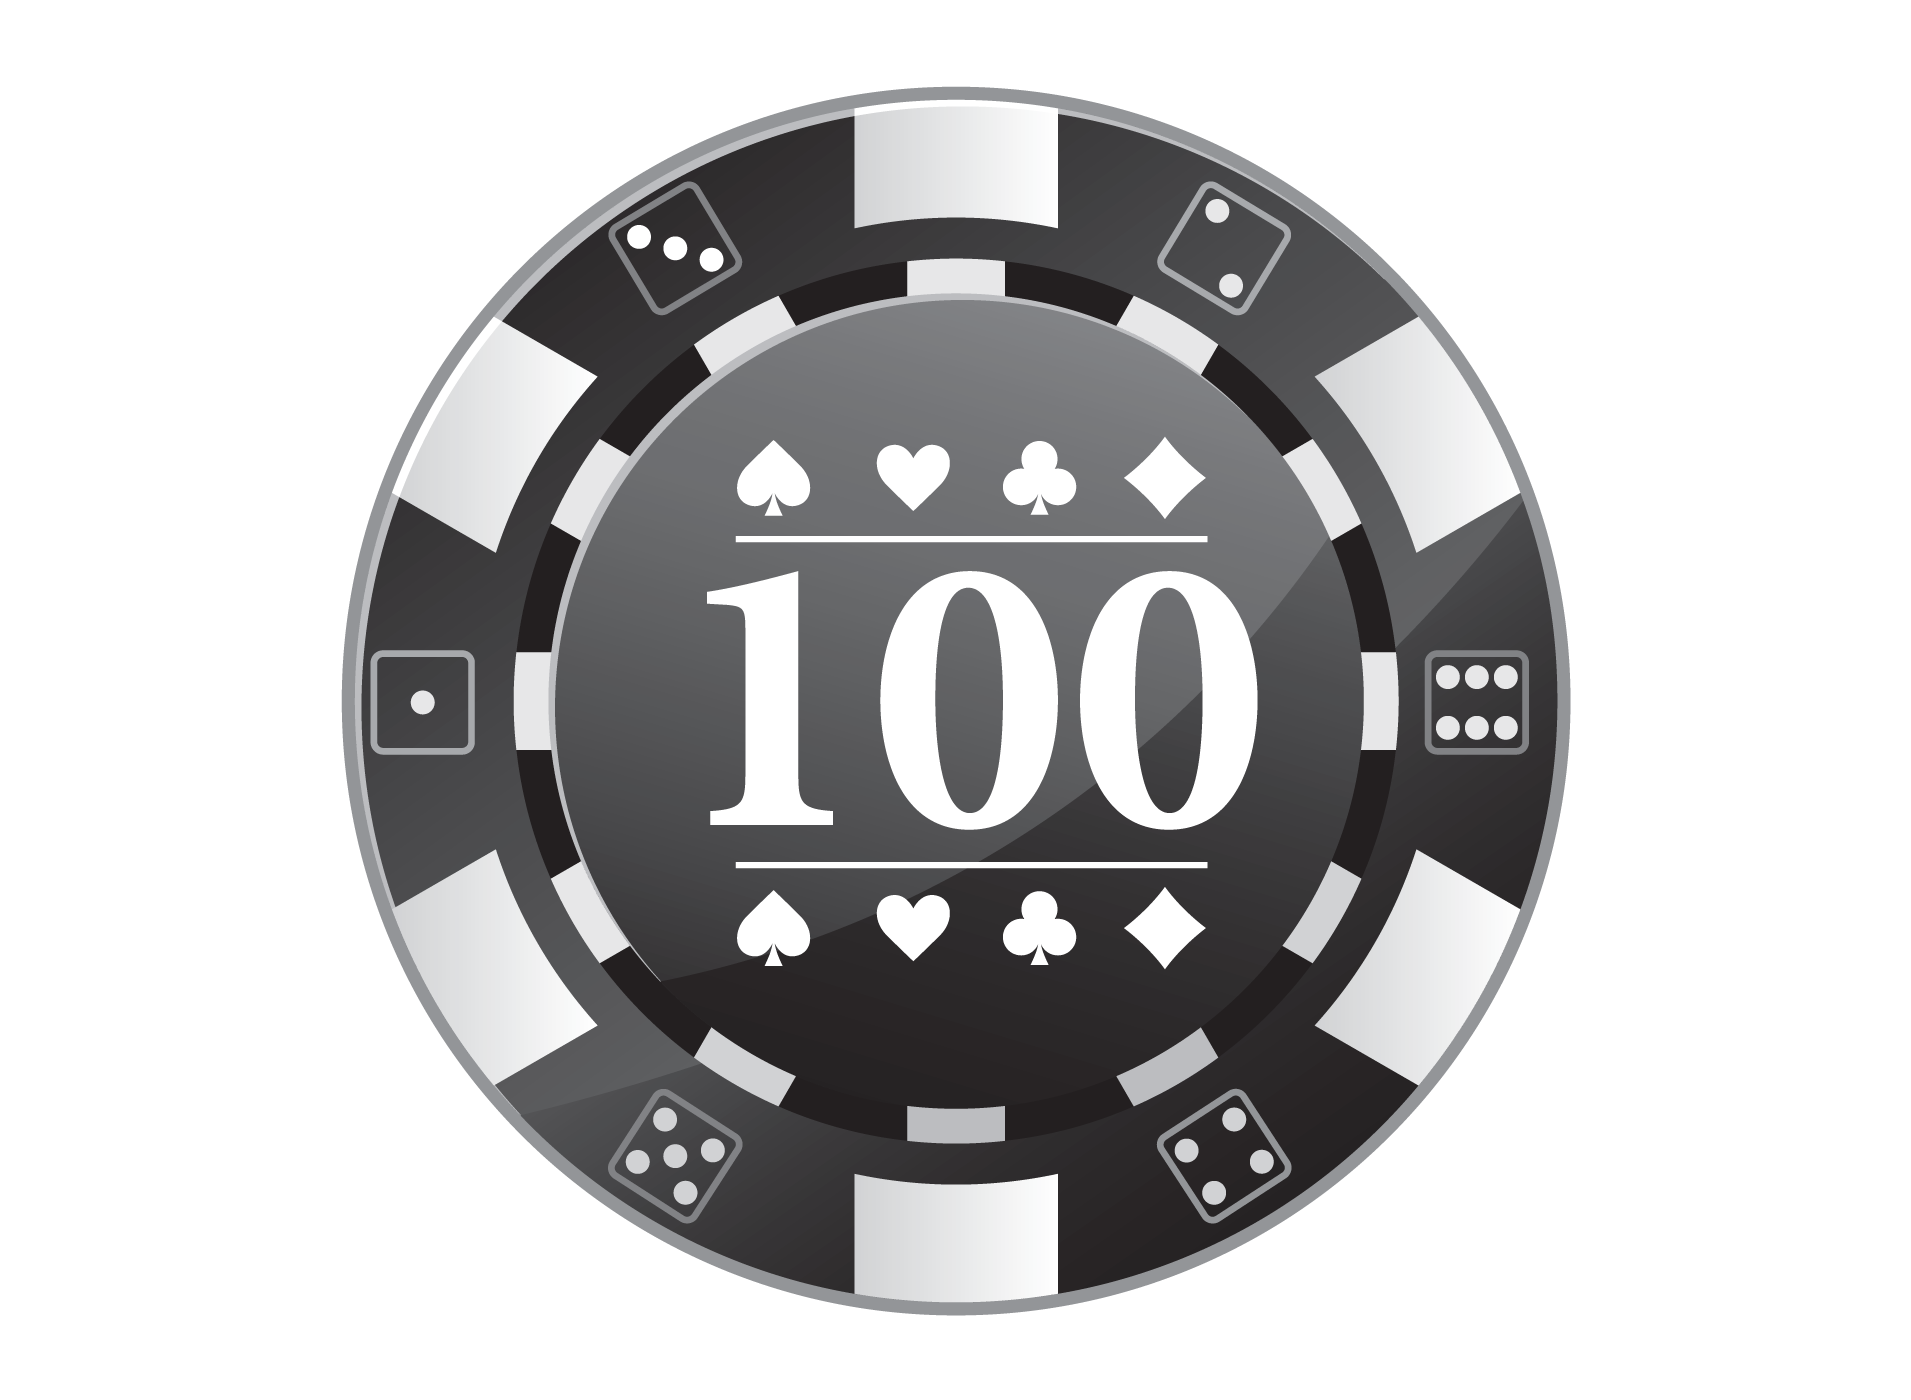 Black and white poker chip stack clipart png royalty free library Pin by Printer on Clipart | Poker chips, Poker, Gambling games png royalty free library